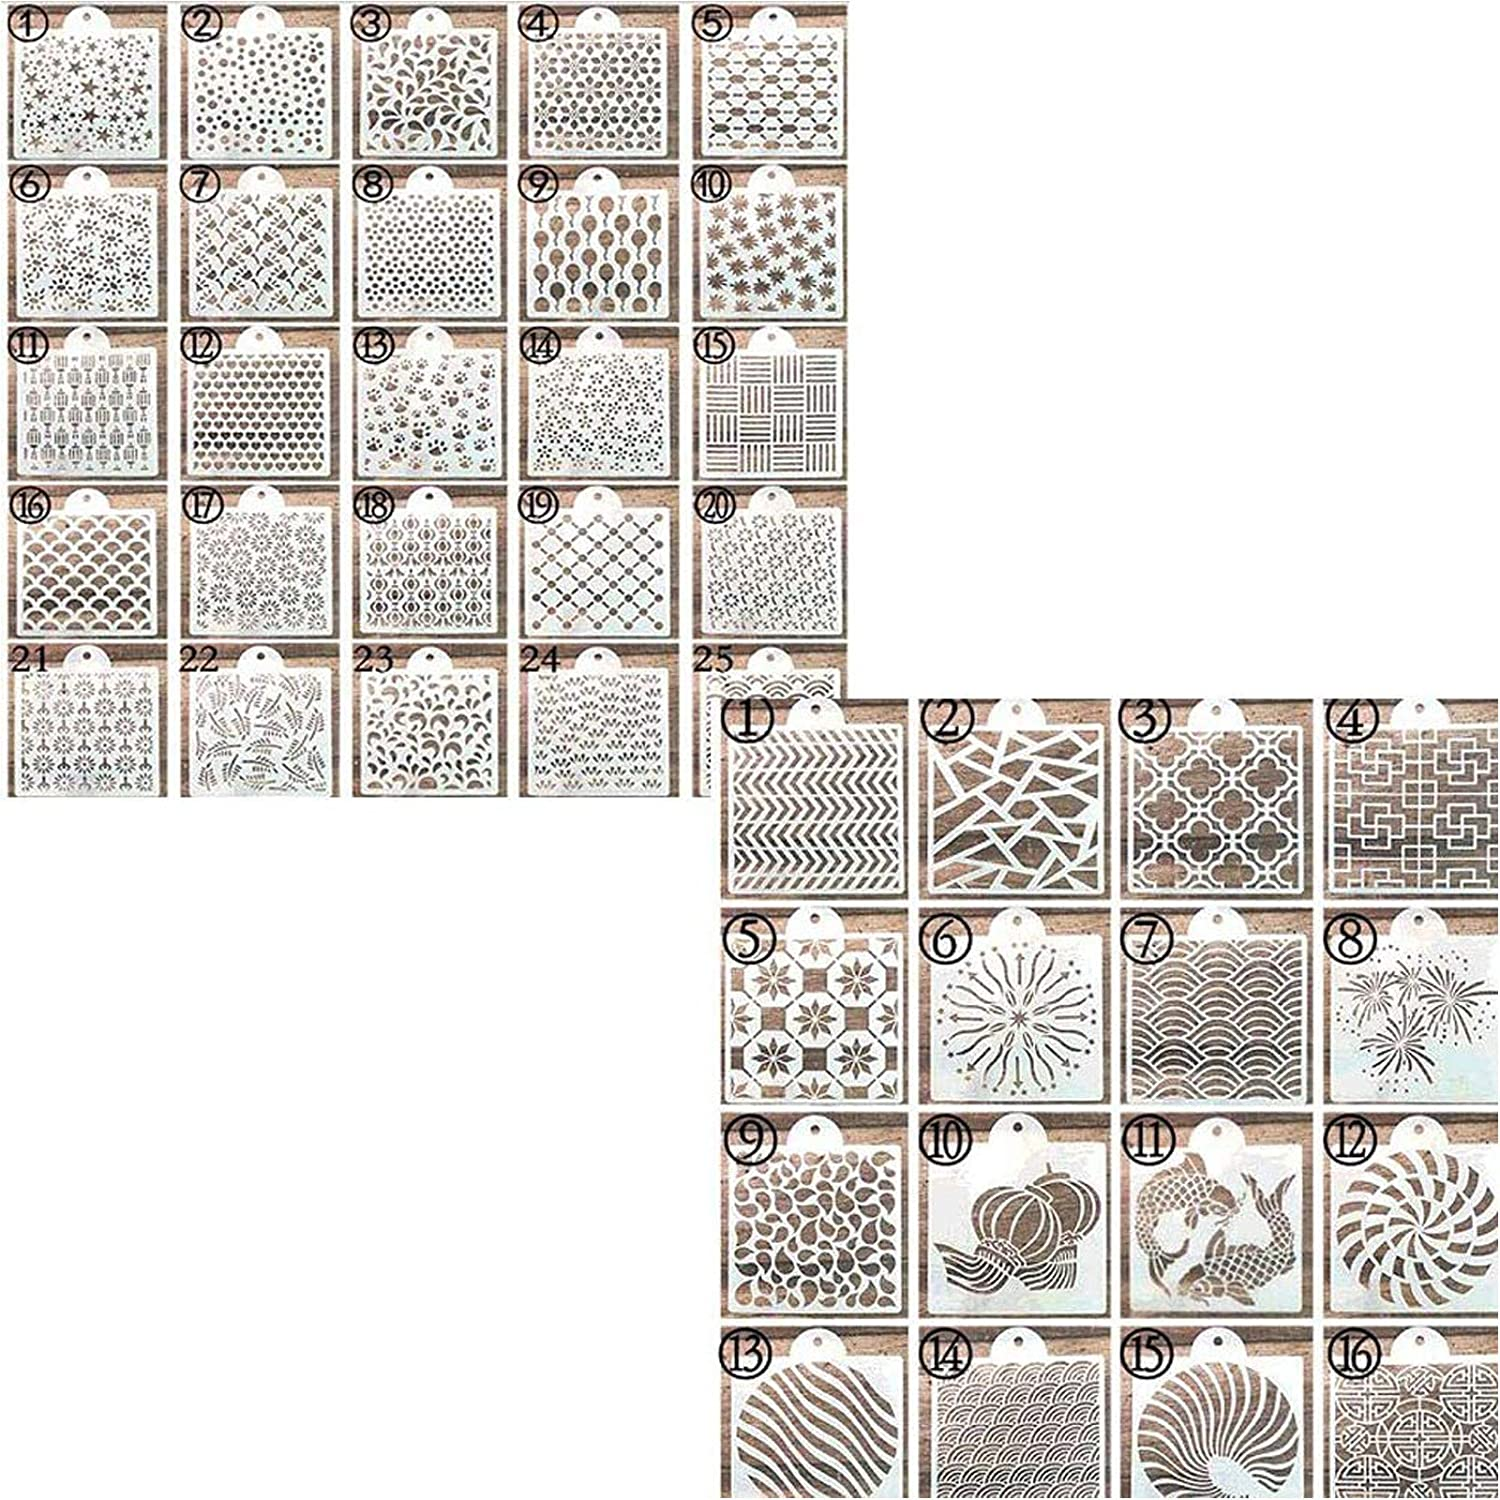 57 Pieces Max 80% OFF Cookie Stencil Set Raleigh Mall Cakes Uspacific Bak